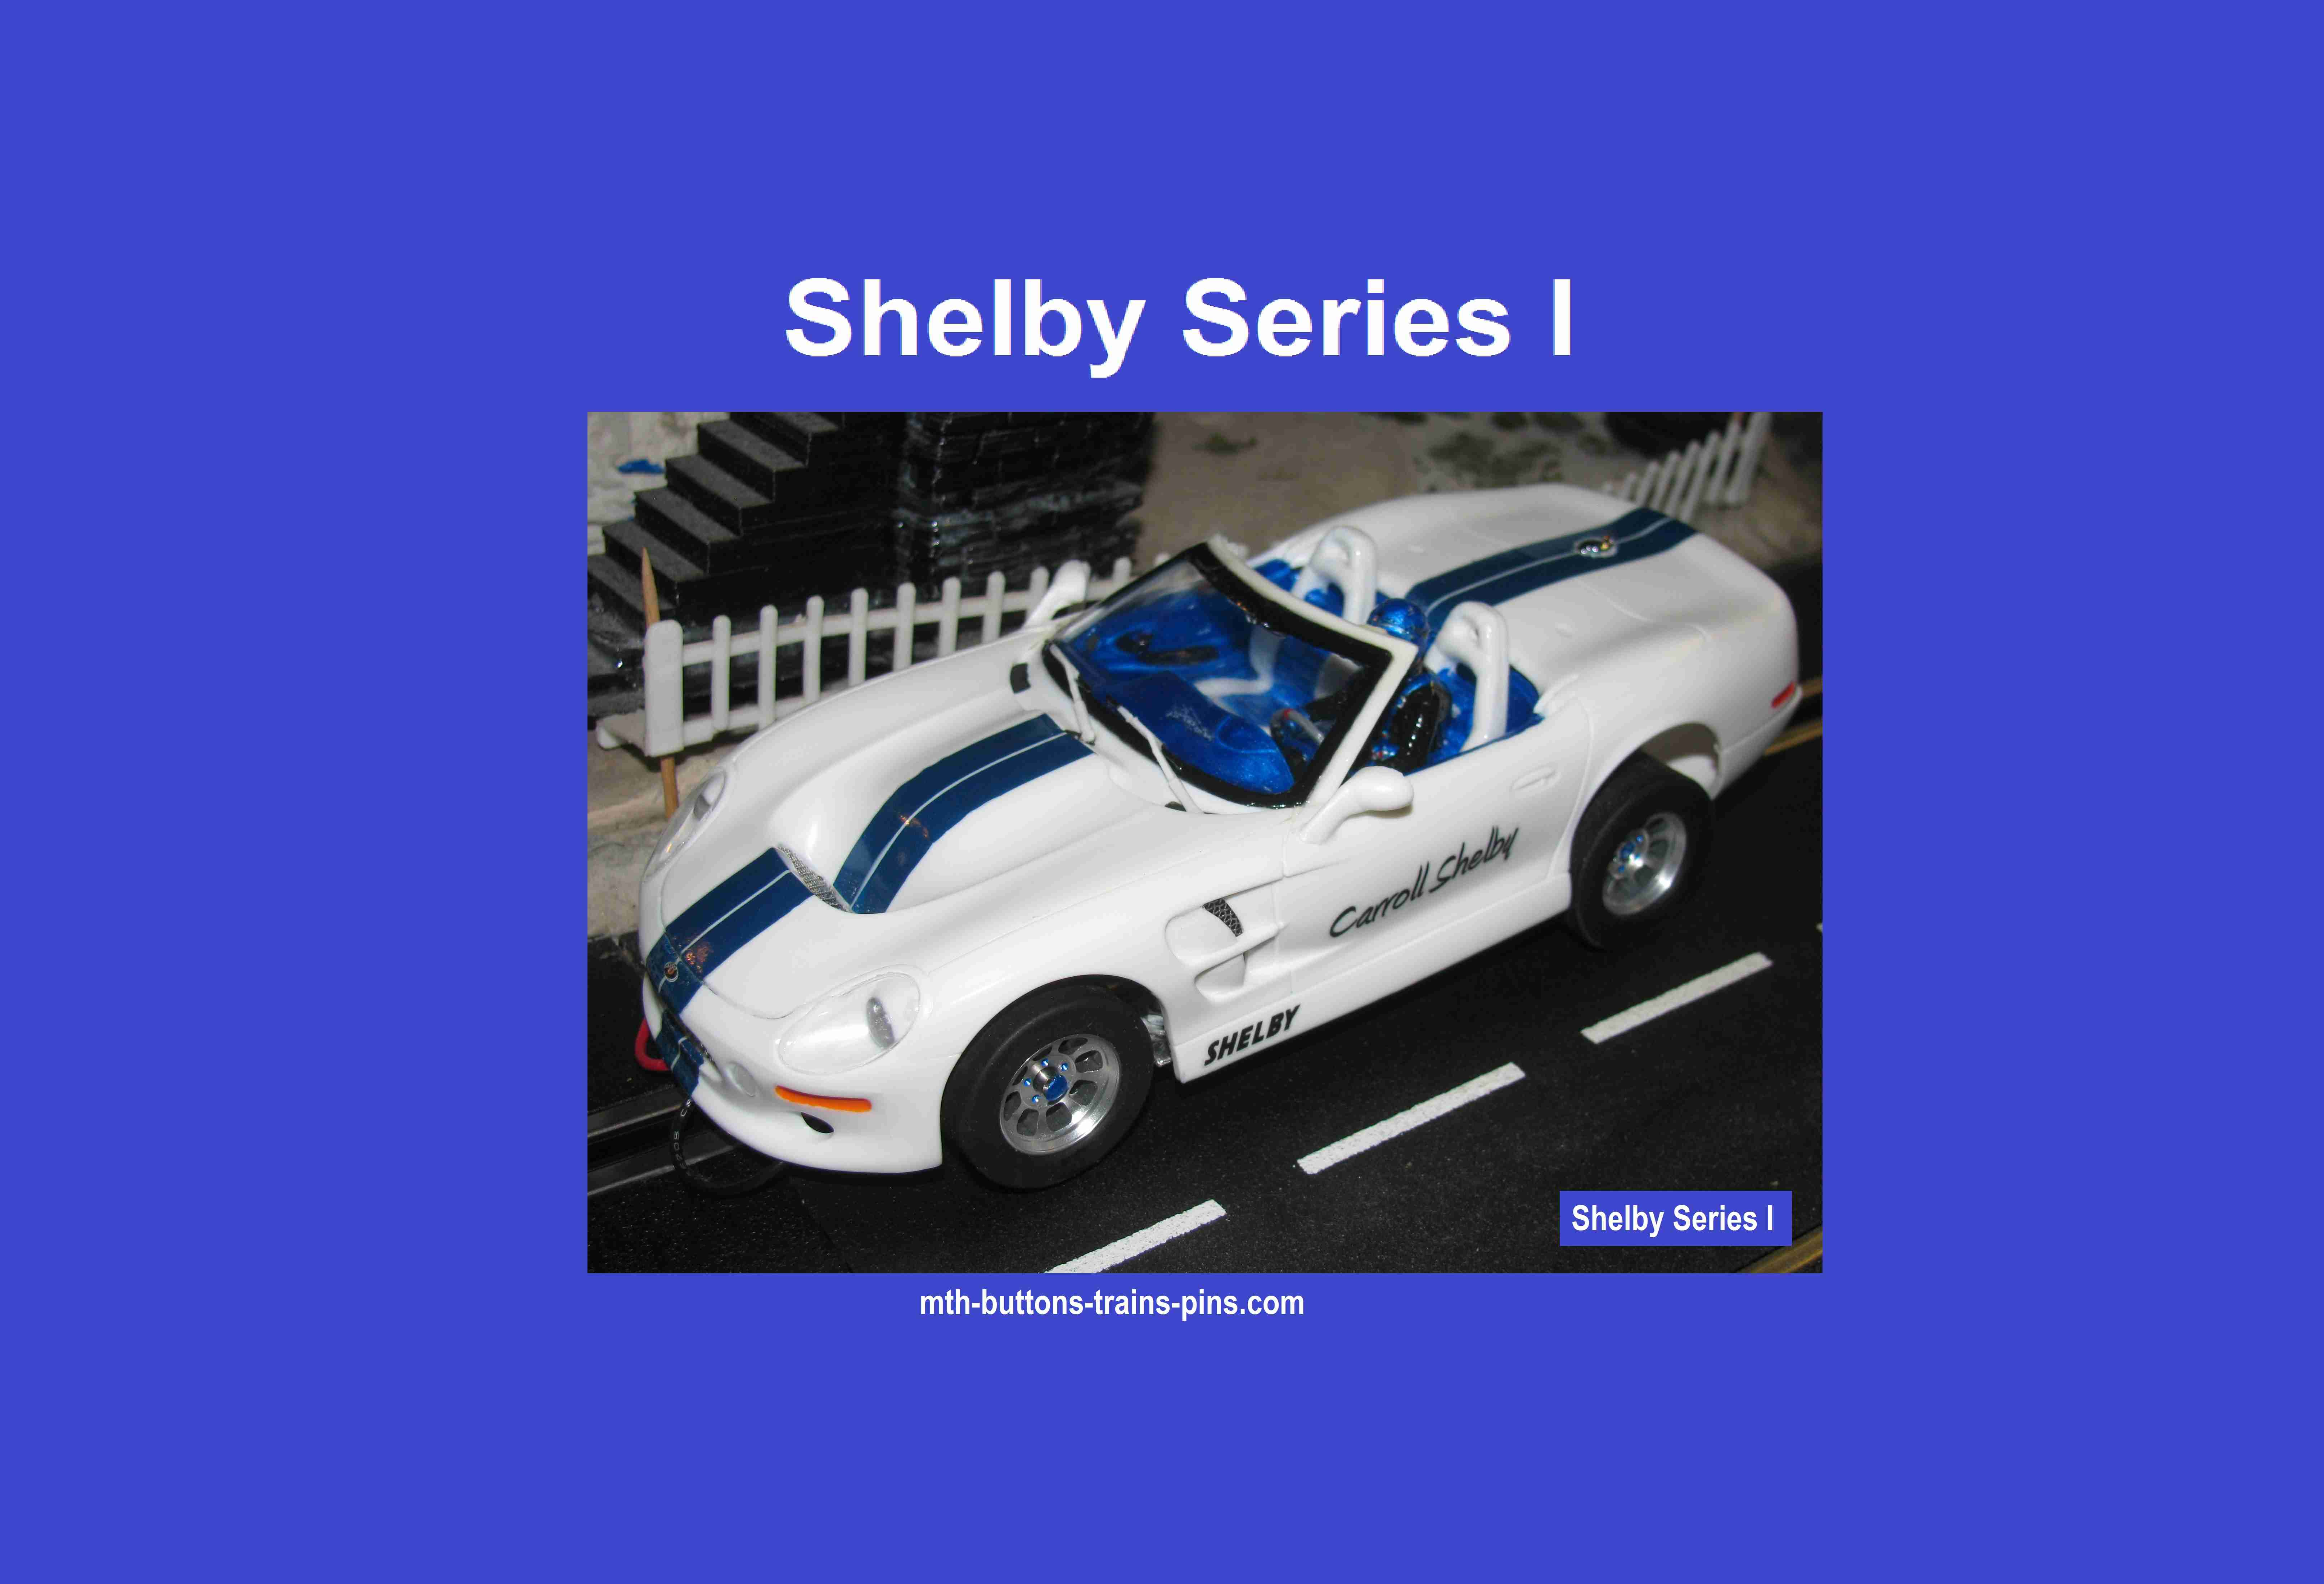 * Winter is coming SALE * Monogram 1998 Shelby Series I 1/24 Scale Slot Car